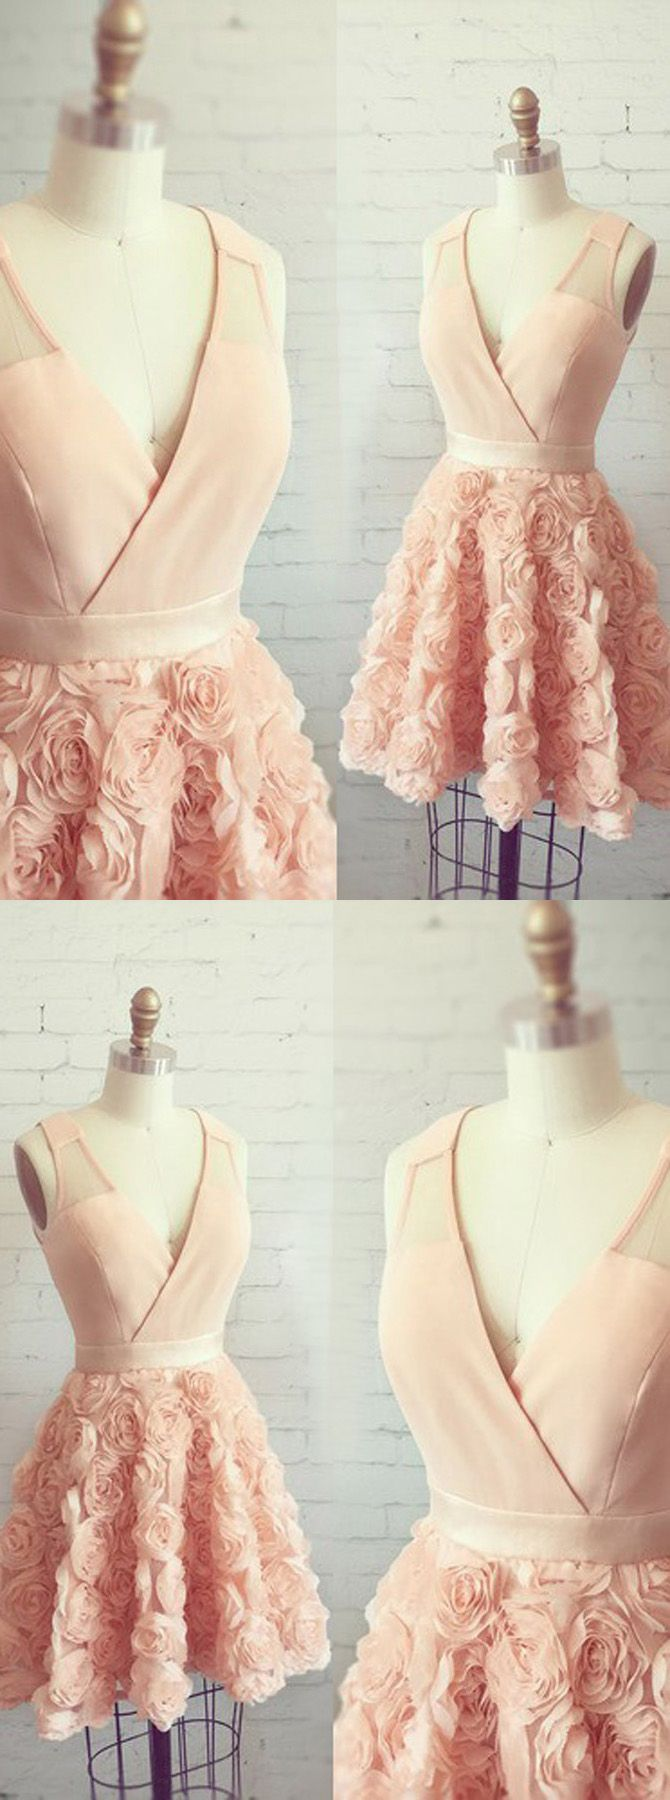 homecoming dresses,short homecoming dresses,cheap homecoming dresses,pink homecoming dresses,v-neck homecoming dresses,appliques homecoming dresses,